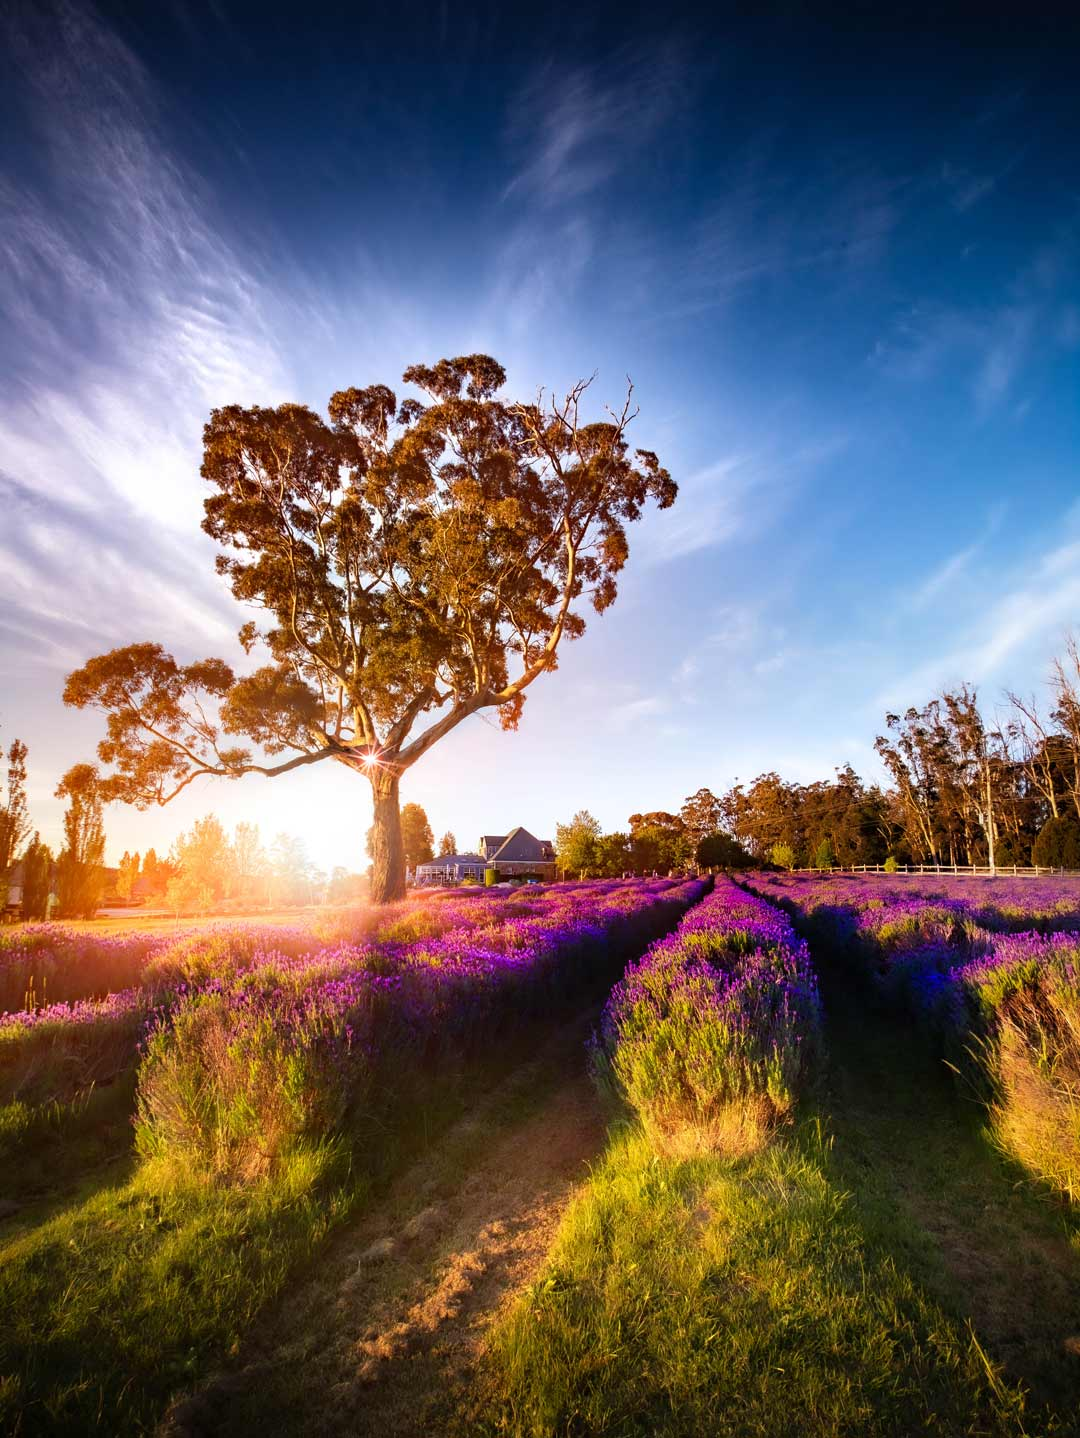 Beautiful Lavender field shot by Jarrod Andrews (JROD Captures) at Sault Restaurant Daylesford